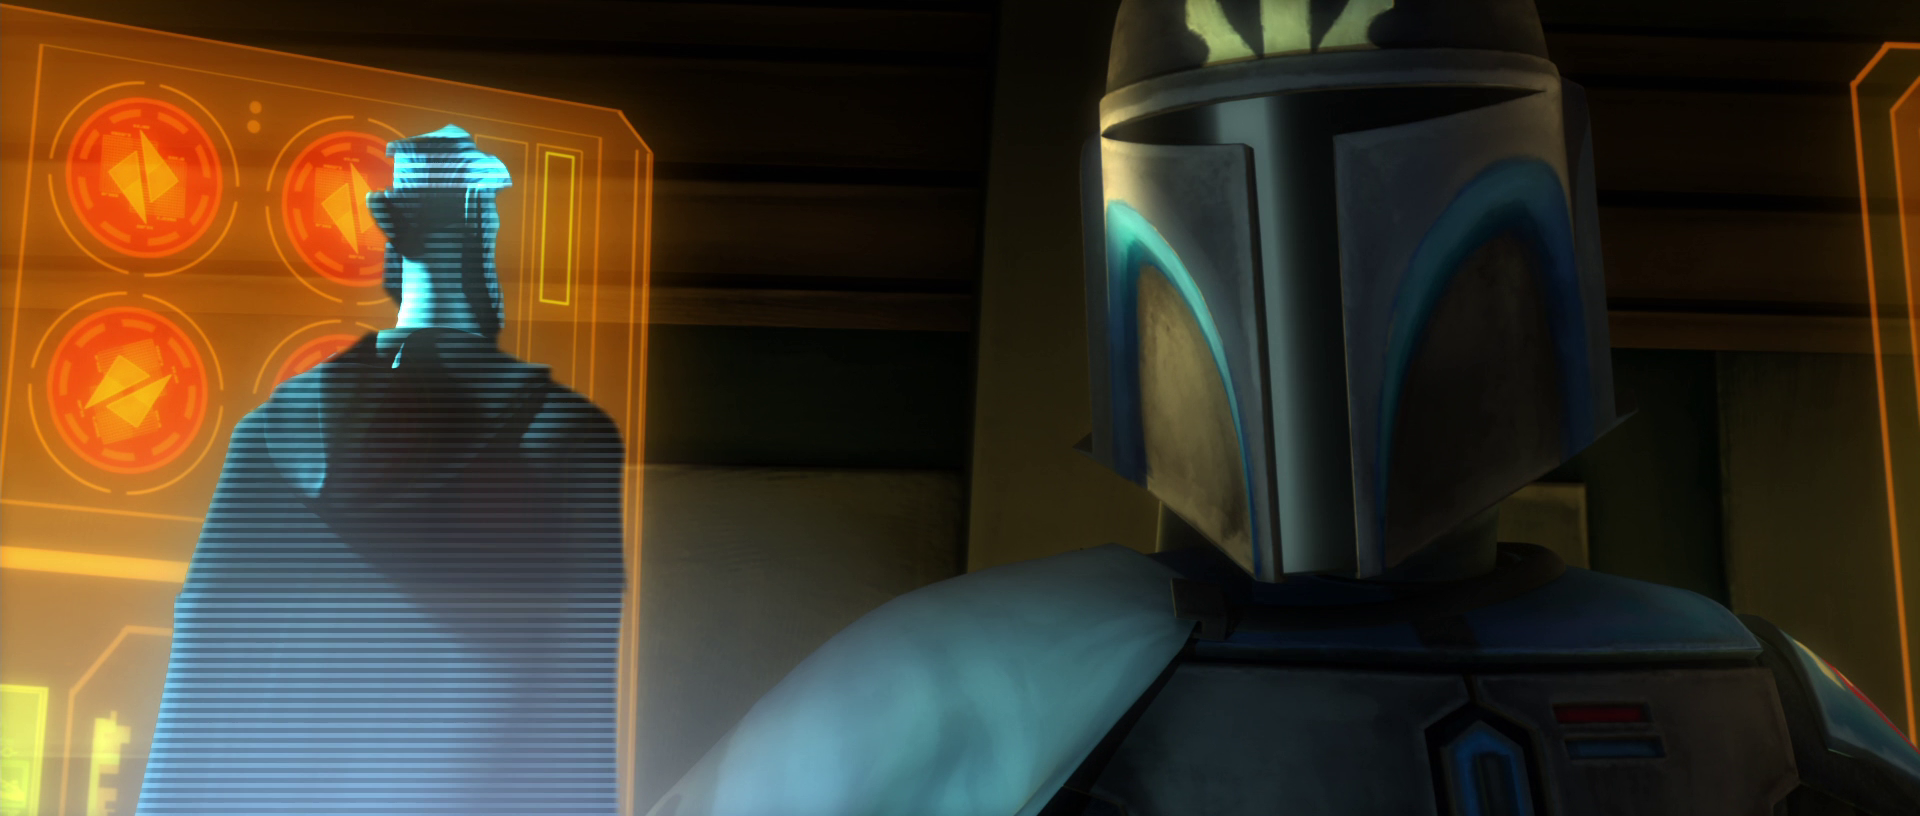 Pre vizsla wookieepedia fandom powered by wikia campaign for mandalore biocorpaavc Image collections